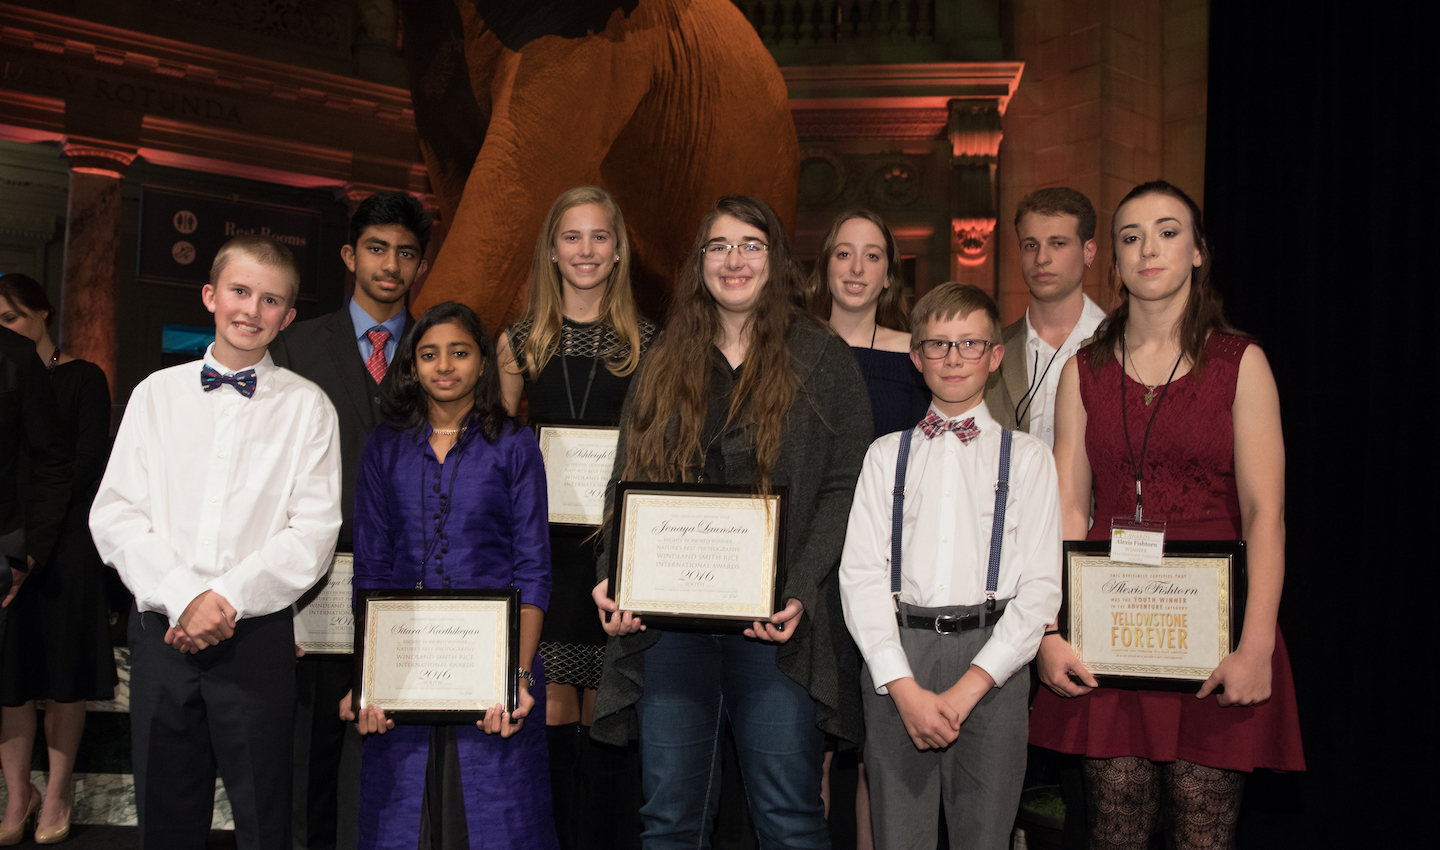 Jenaya and the other young photographers from around the world awarded in the Windland Smith Rice Awards, Audubon Awards and Yellowstone Forever competition. (Photo Credit: NBP Awards)